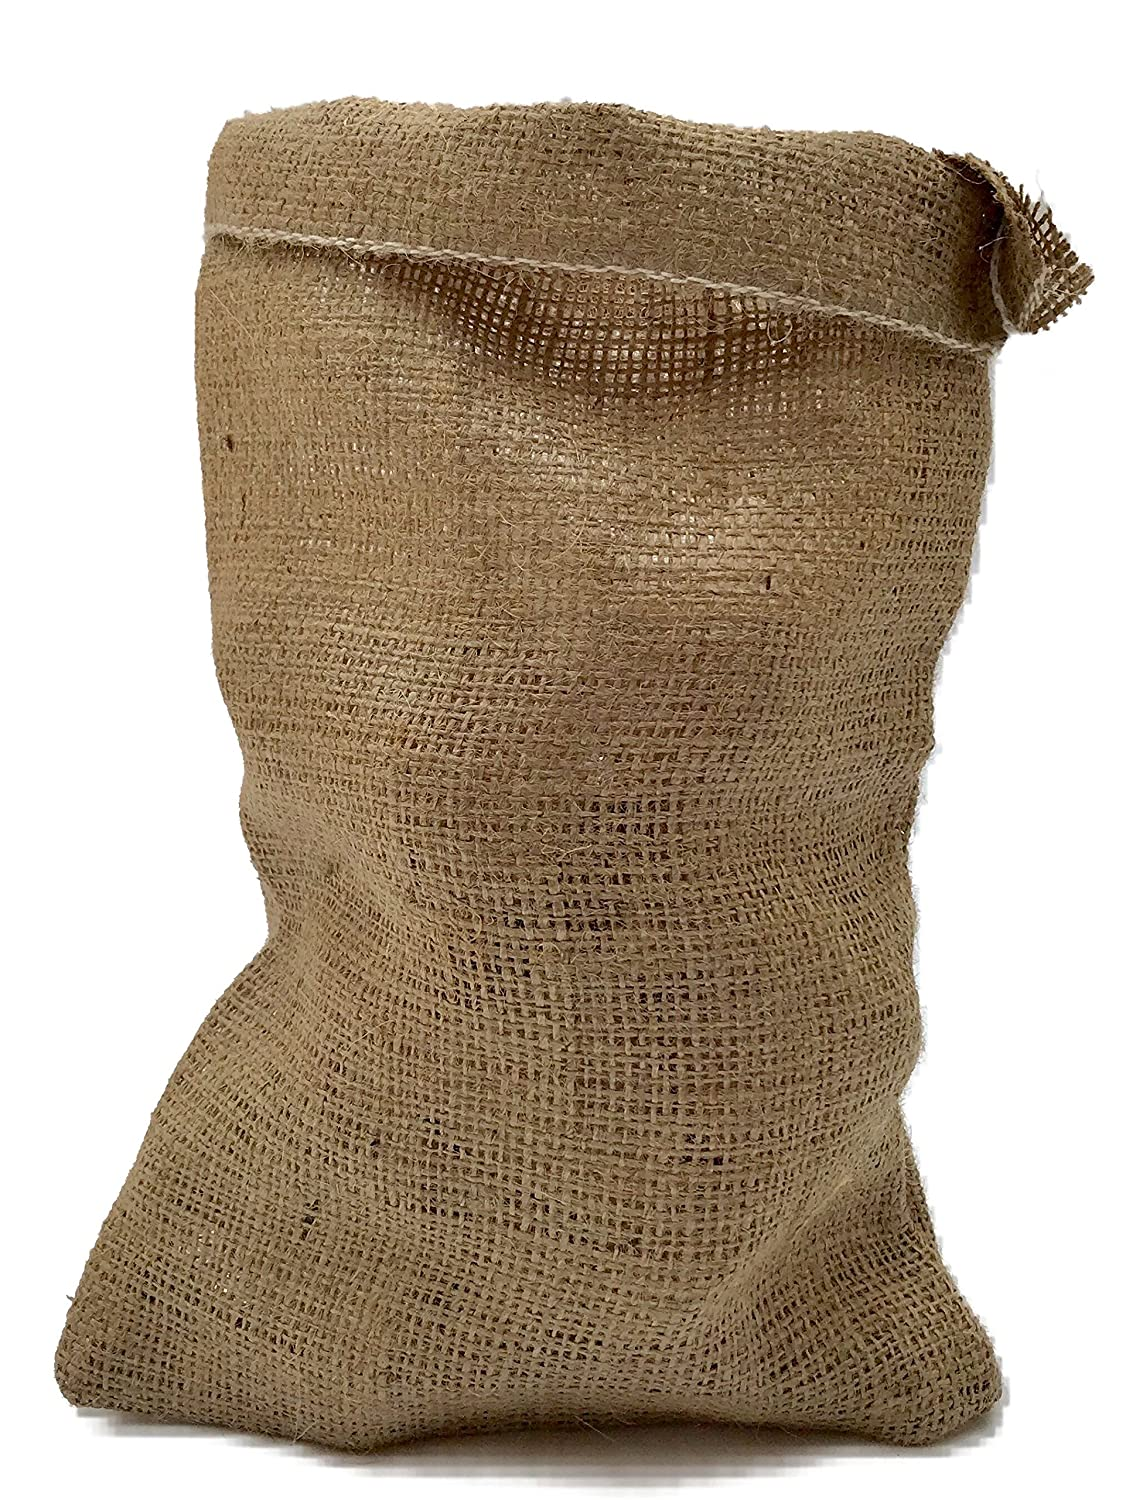 Nutley's 14 x 20 cm Small Hessian Garlic Sacks (Pack of 15) Nutley's